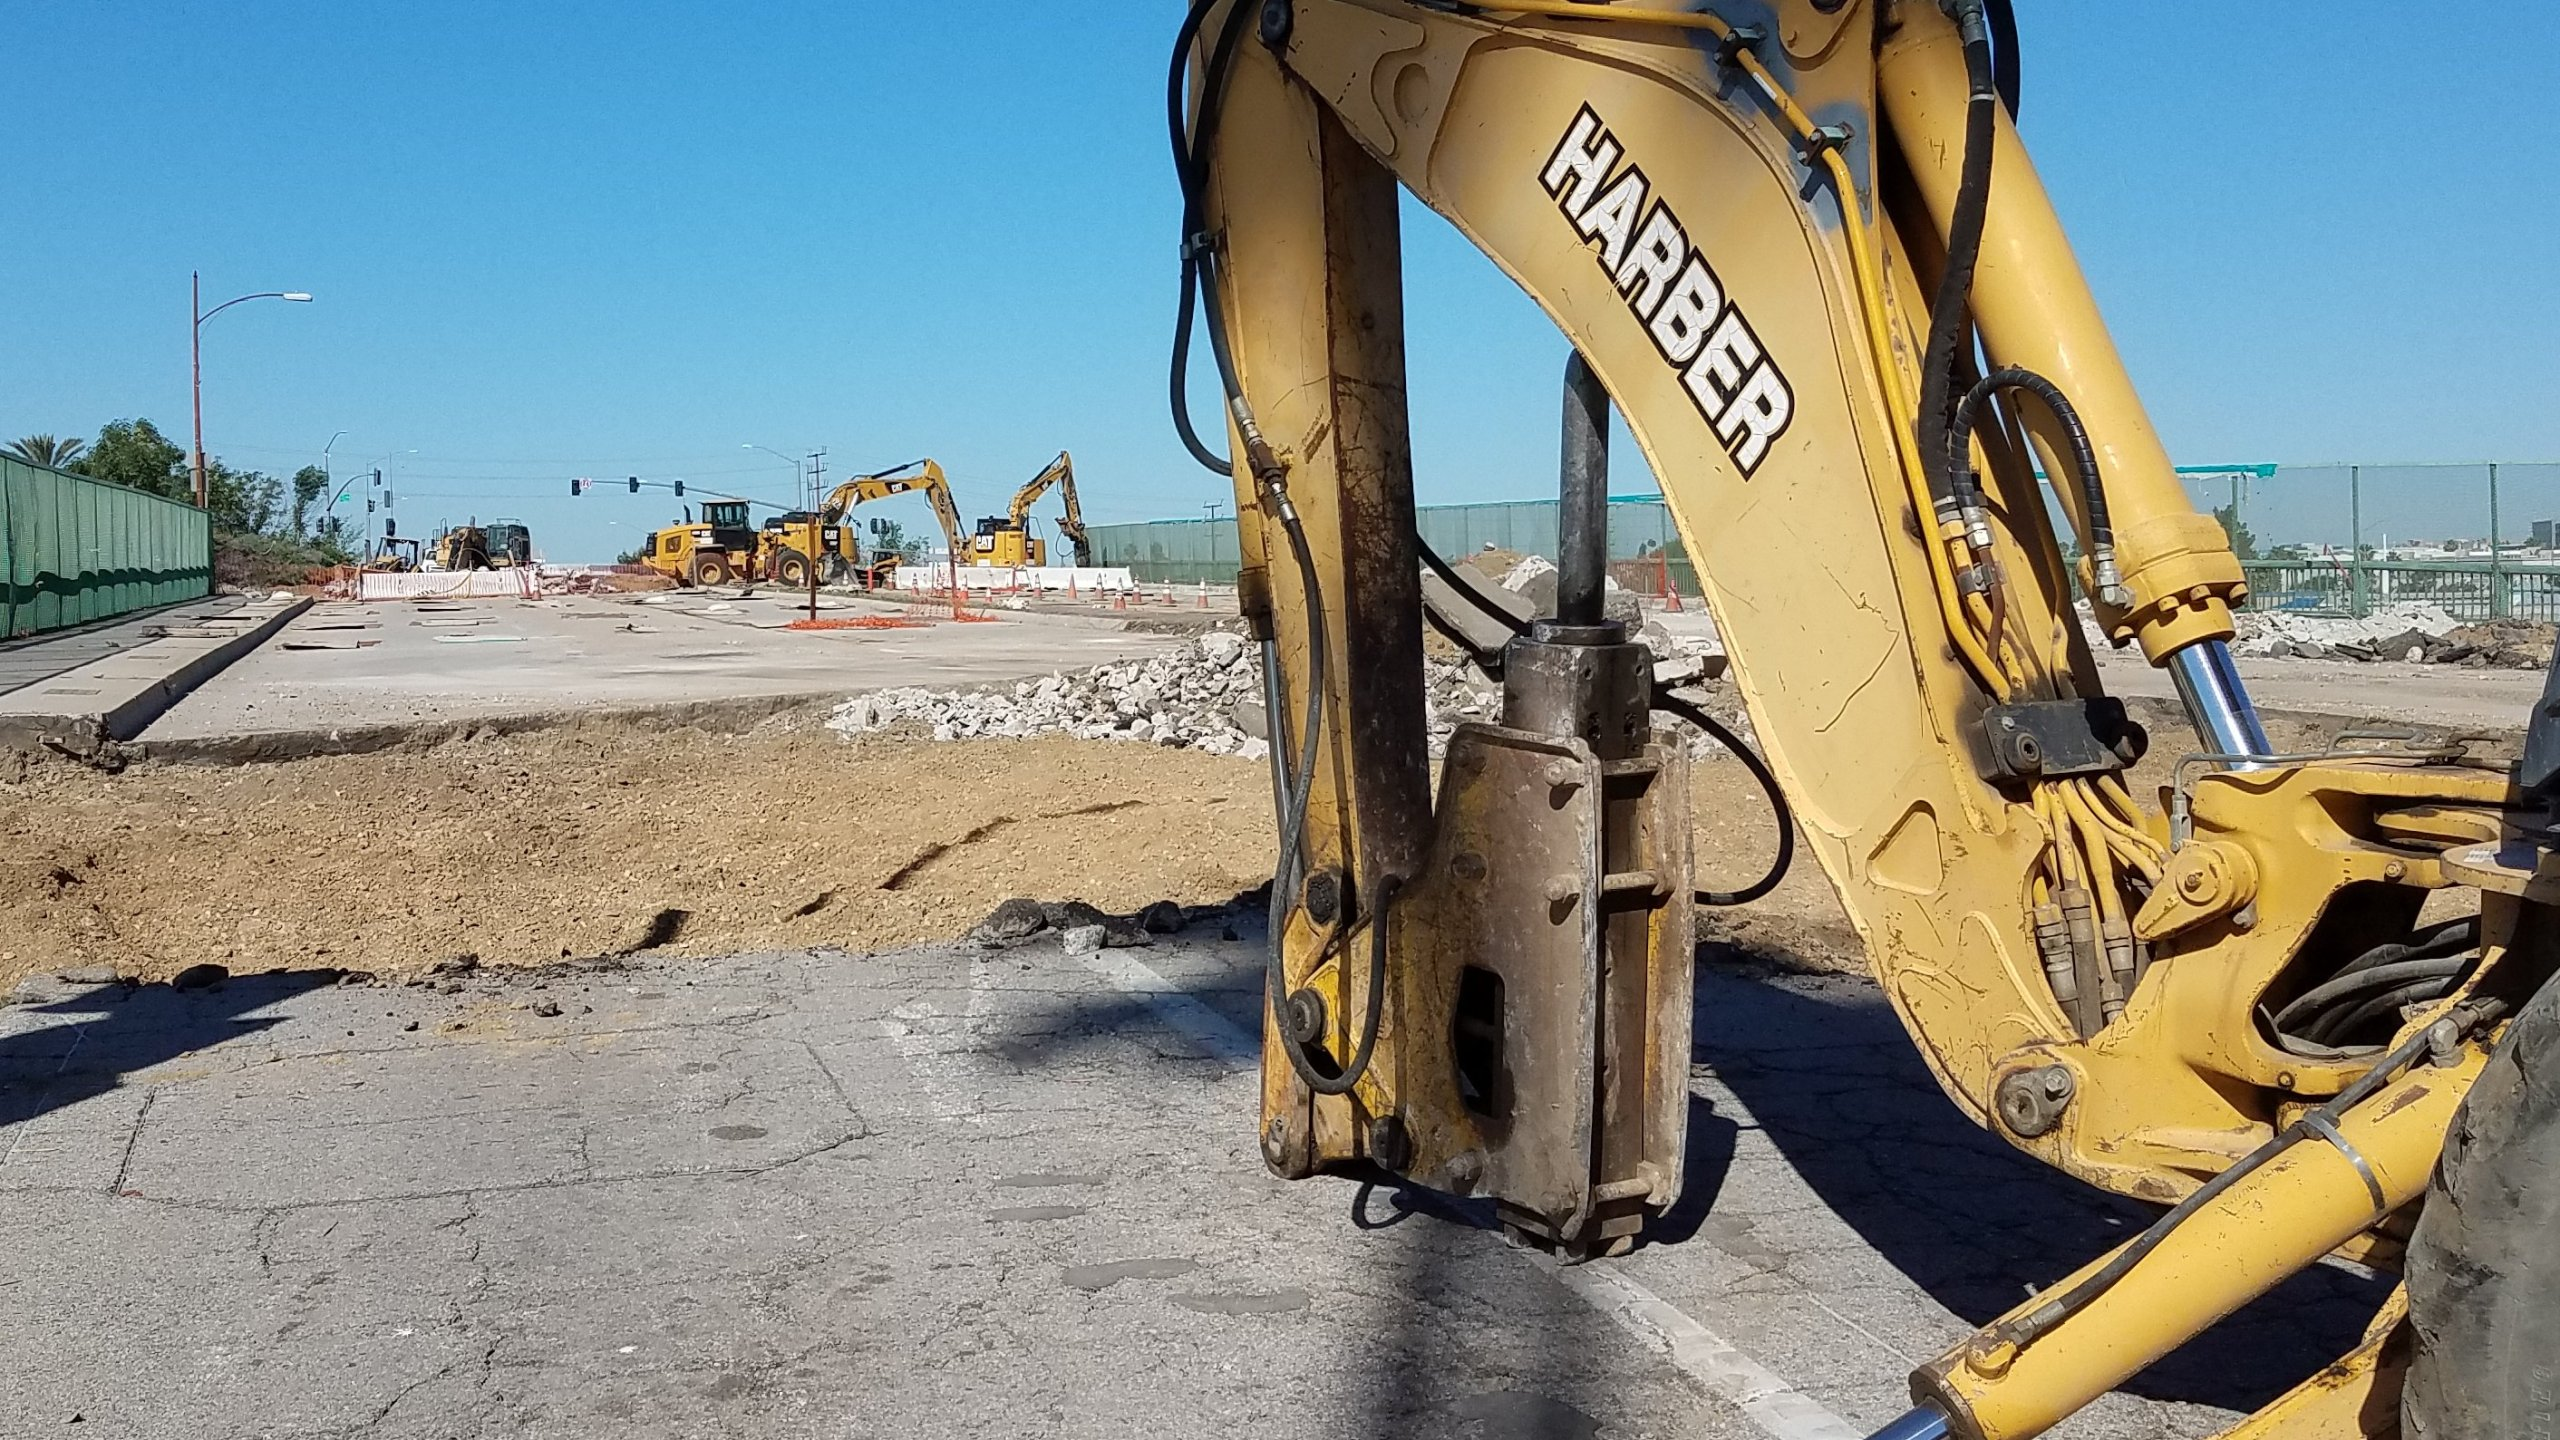 The Caltrans Twitter account dedicated to updates on 5 Freeway construction projects posted this image of bulldozing equipment on April 25, 2020.